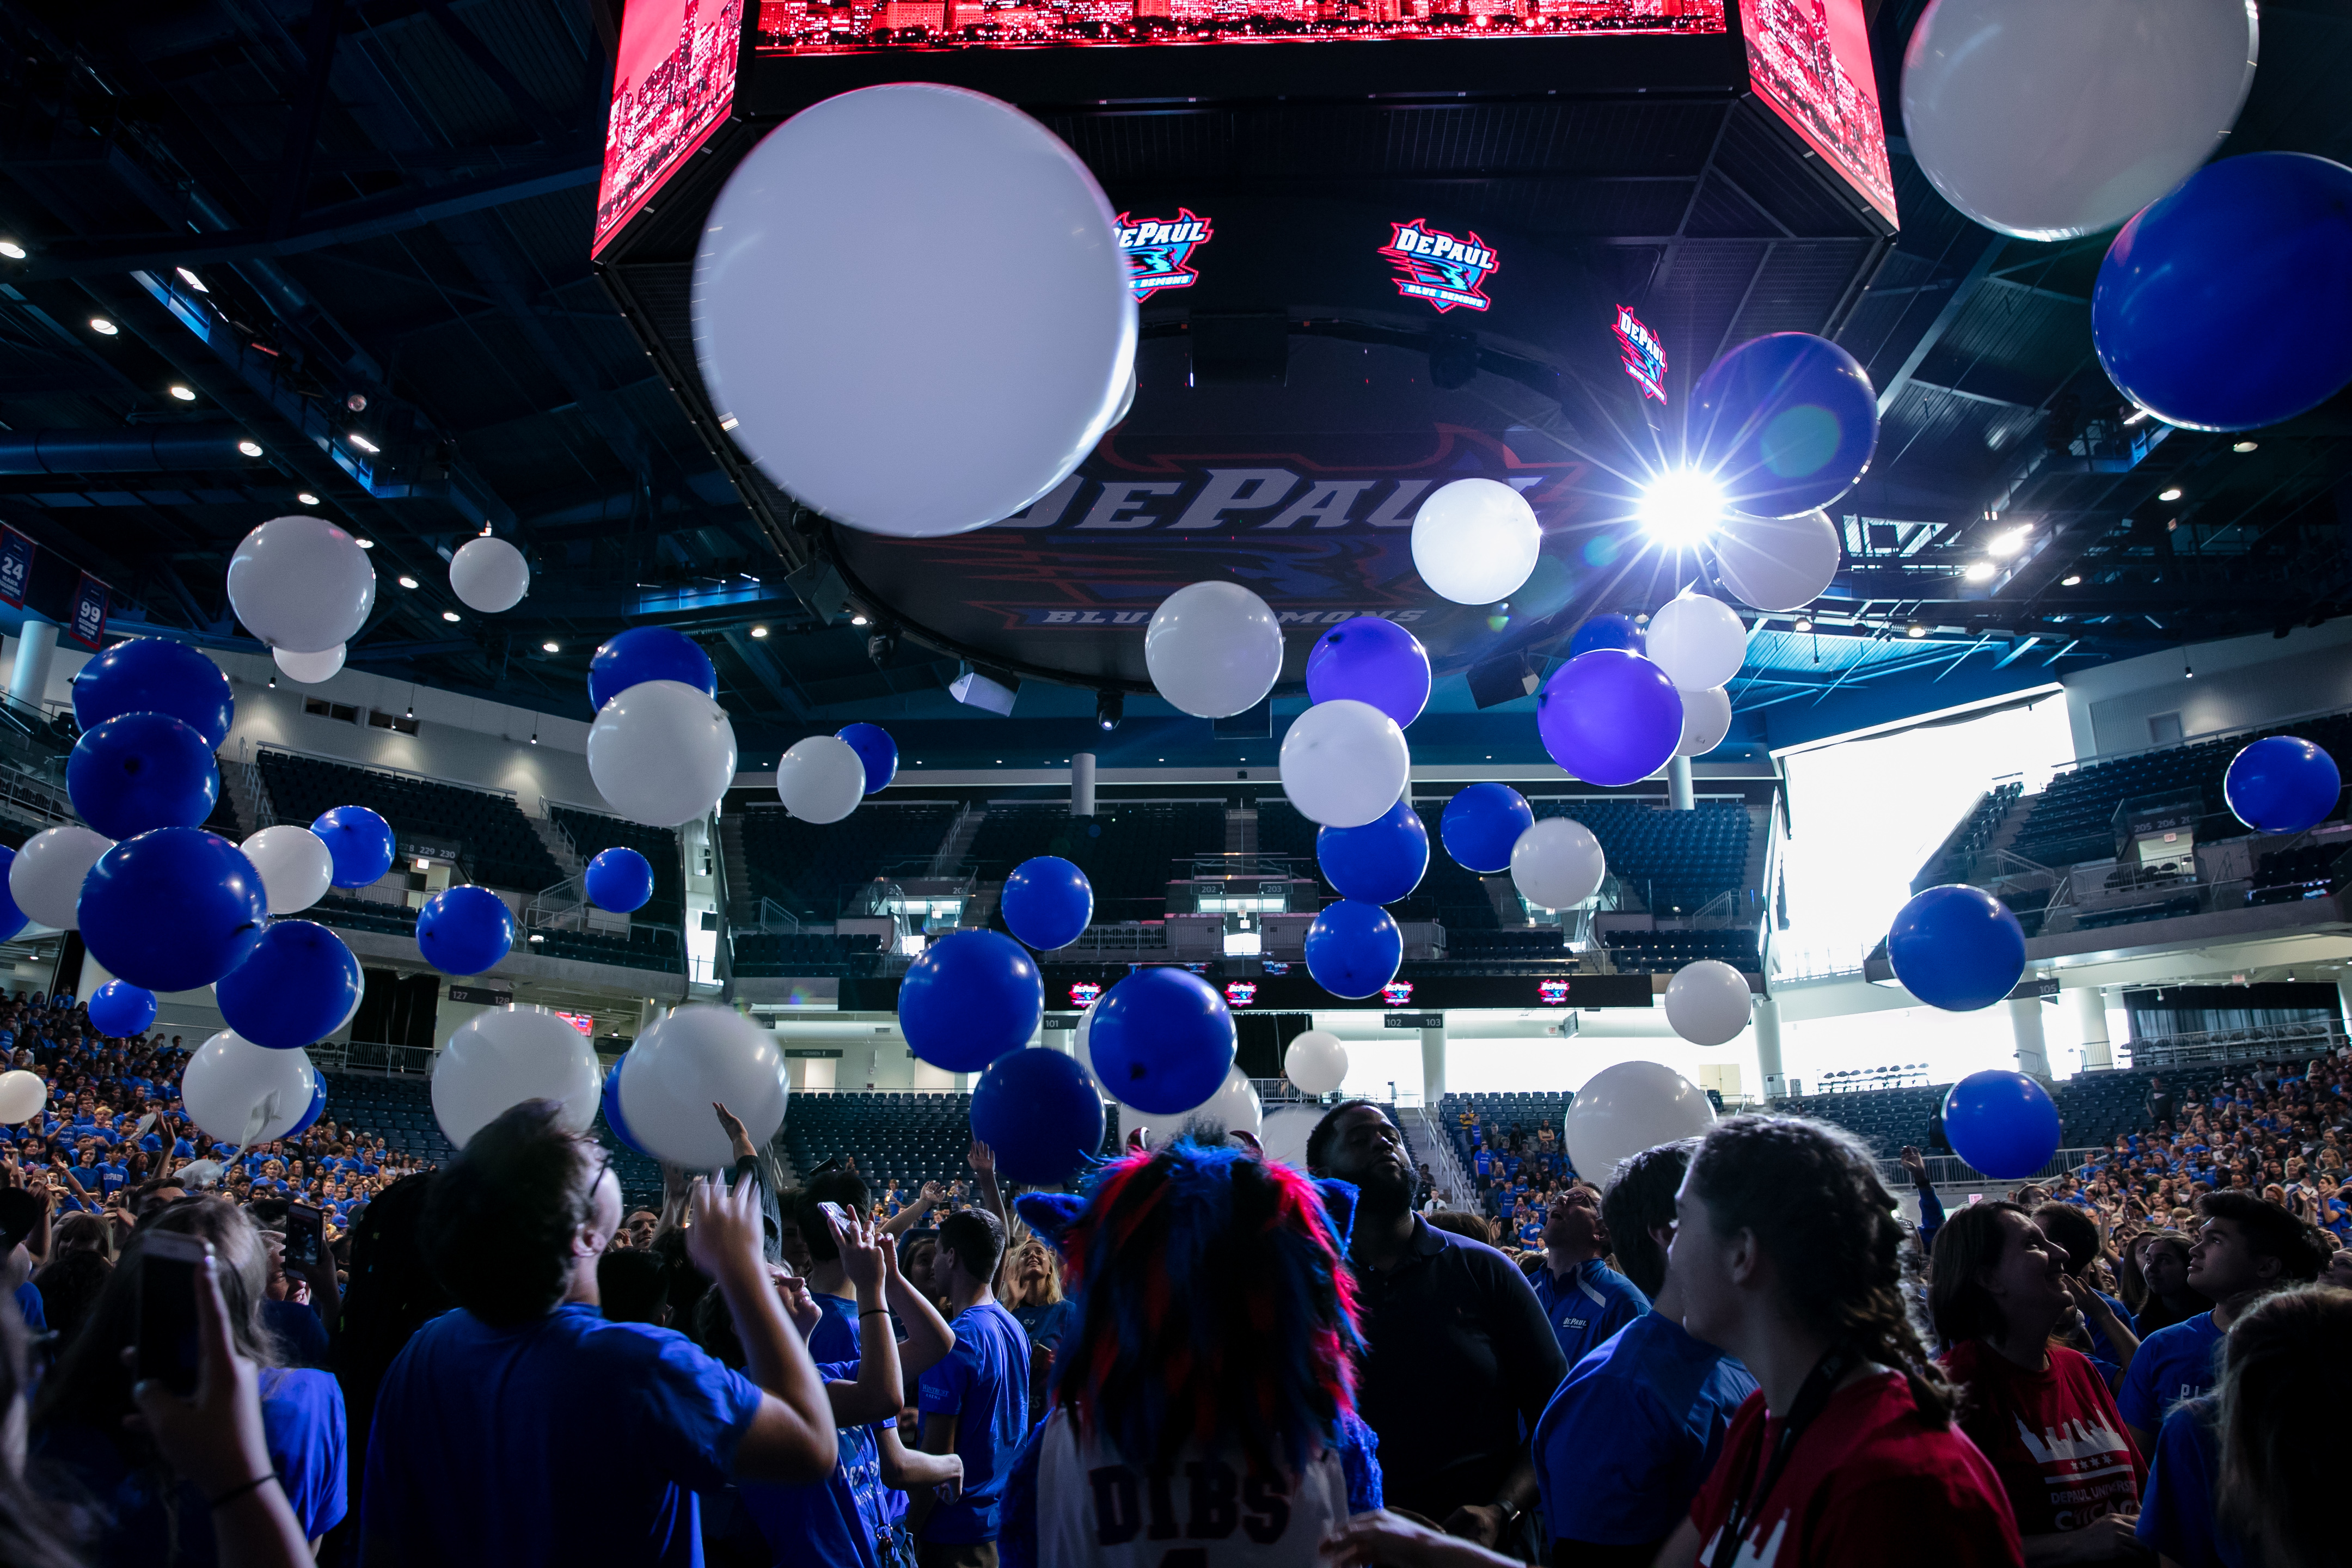 A surprise balloon drop ended the upbeat ceremony. (DePaul University/Randall Spriggs)